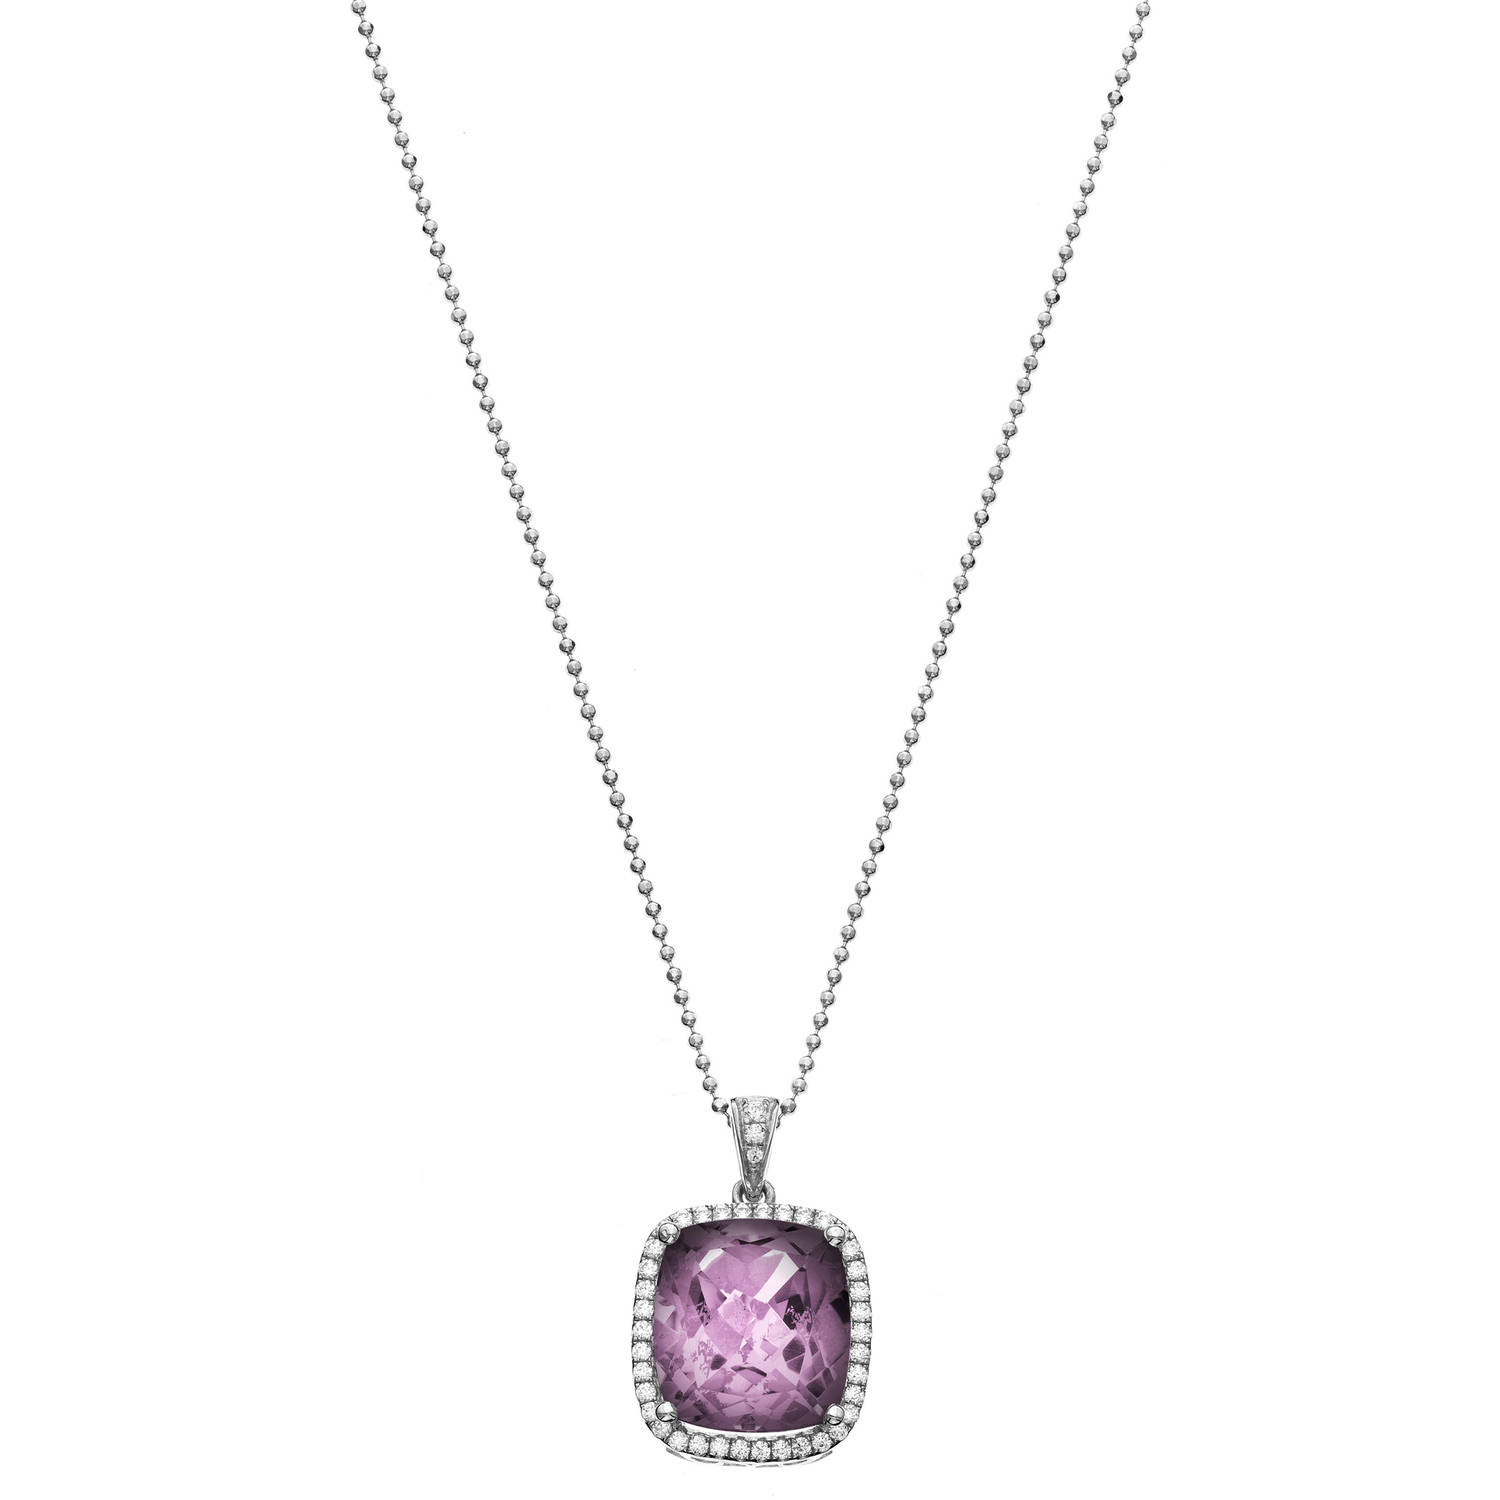 5th & Main Platinum-Plated Sterling Silver Large Cushion-Cut Amethyst Pave Cubic Zirconia Pendant Necklace by Generic